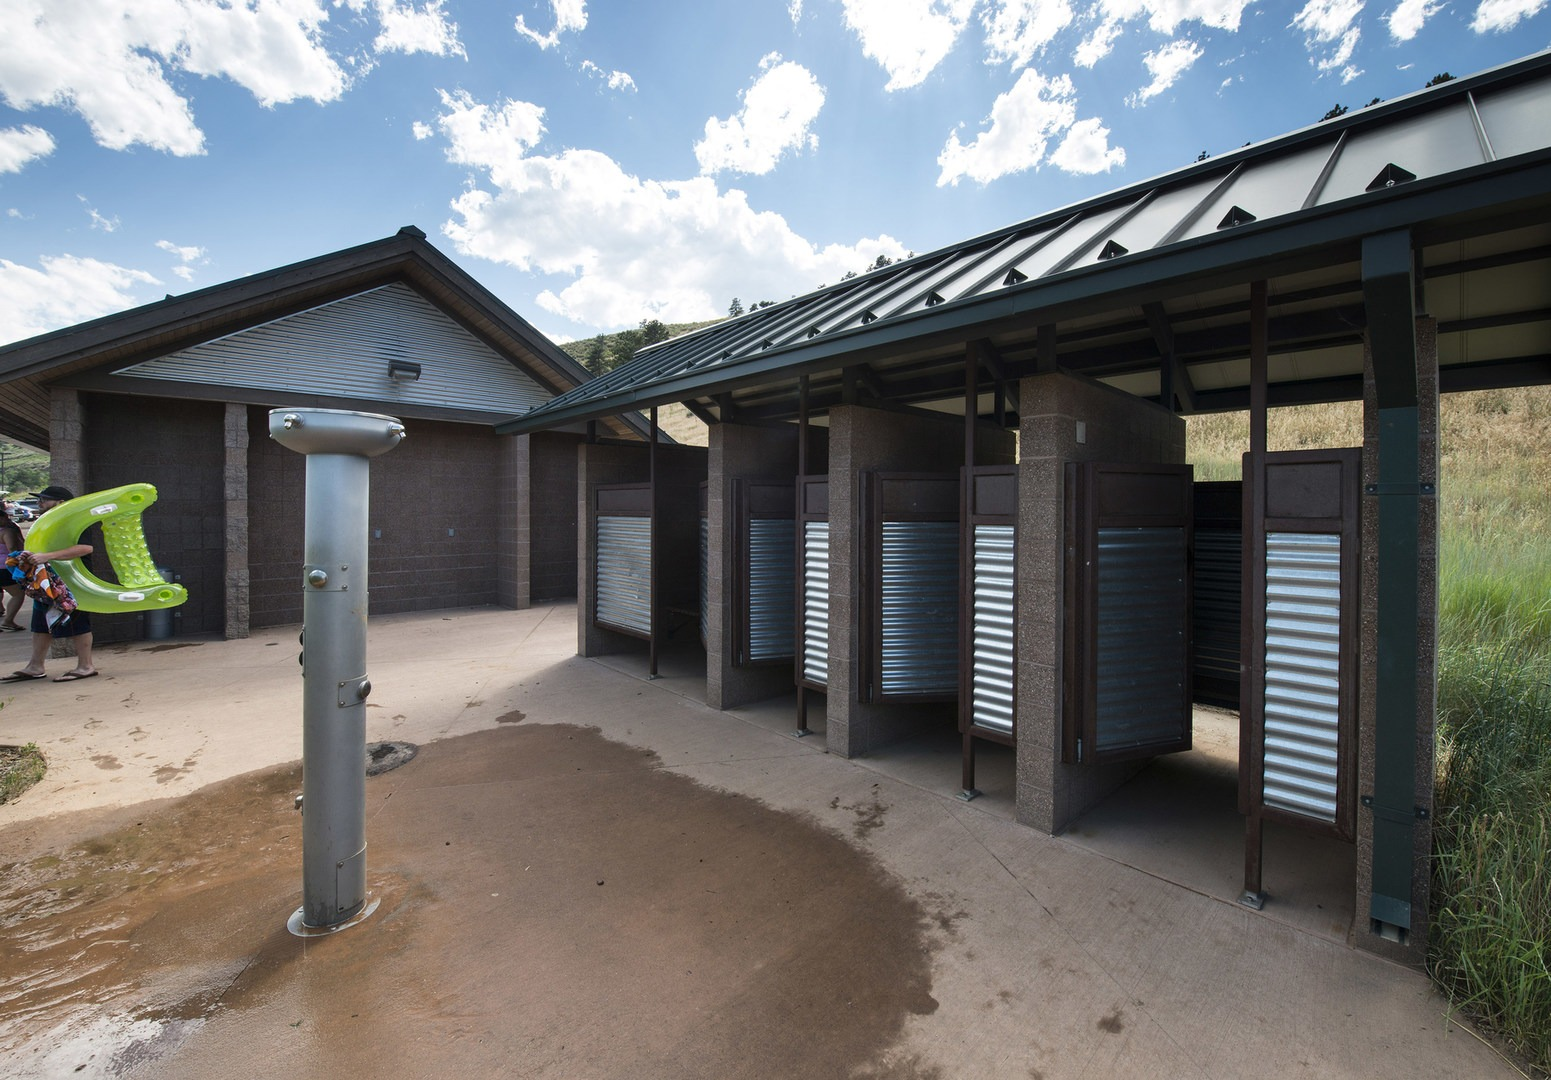 South · Outdoor Showers, Changing Rooms And Restrooms At South Bay Day Use  Area, Horsetooth Reservoir ...